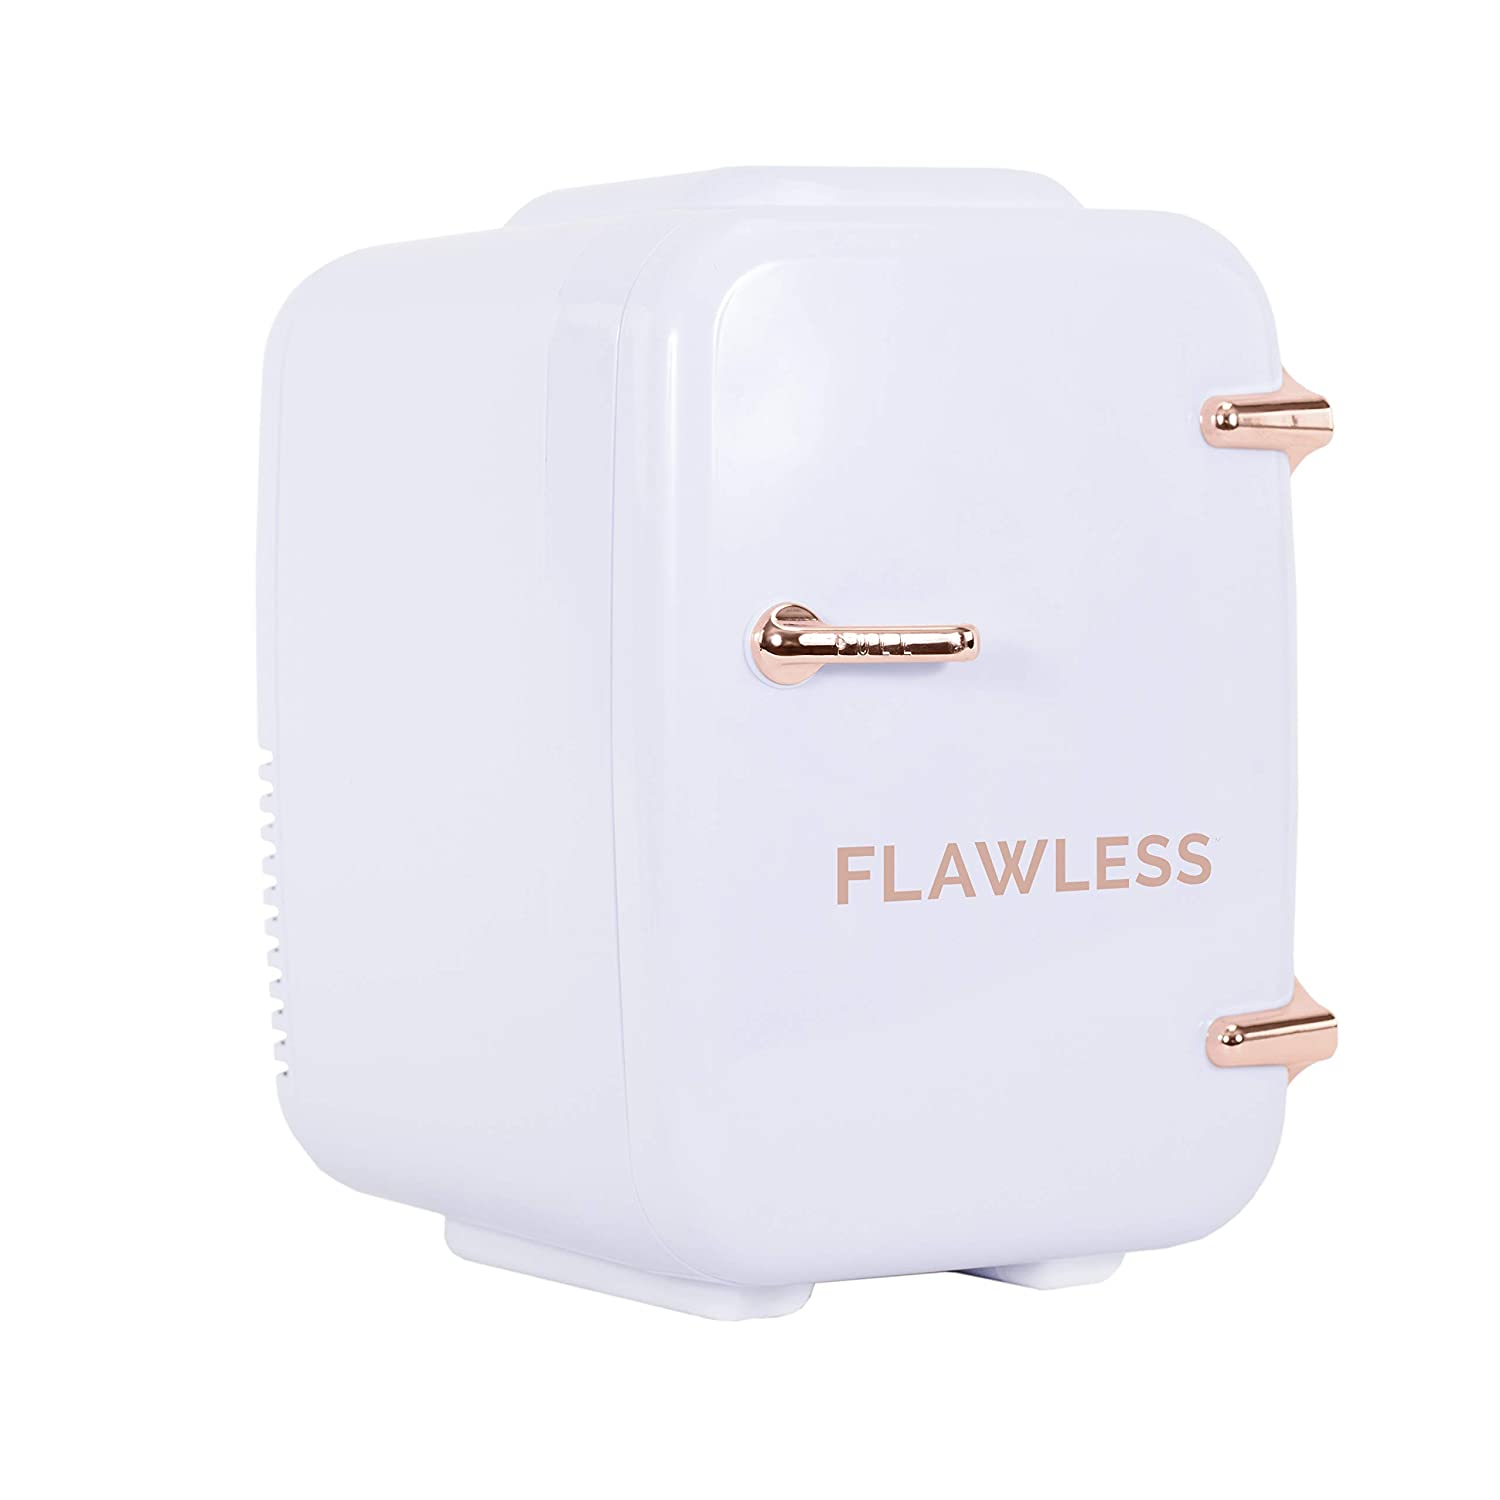 Finishing Touch Flawless Beauty Mini Fridge for Makeup and Skincare, White/Rose Gold